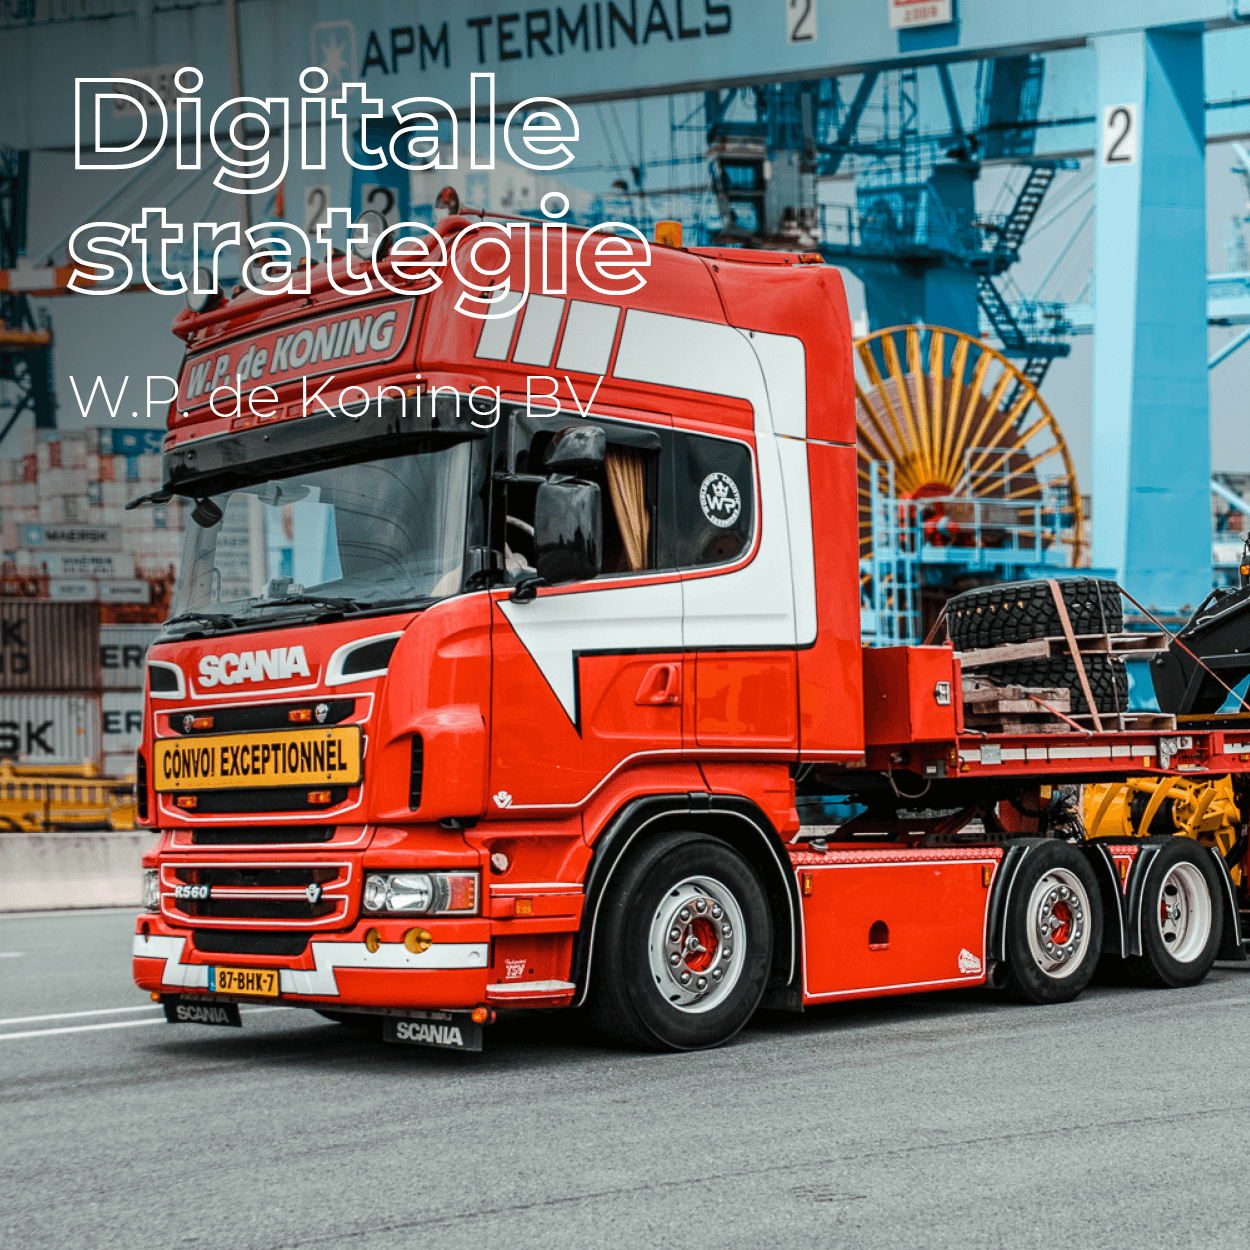 Digital strategy Boldwave